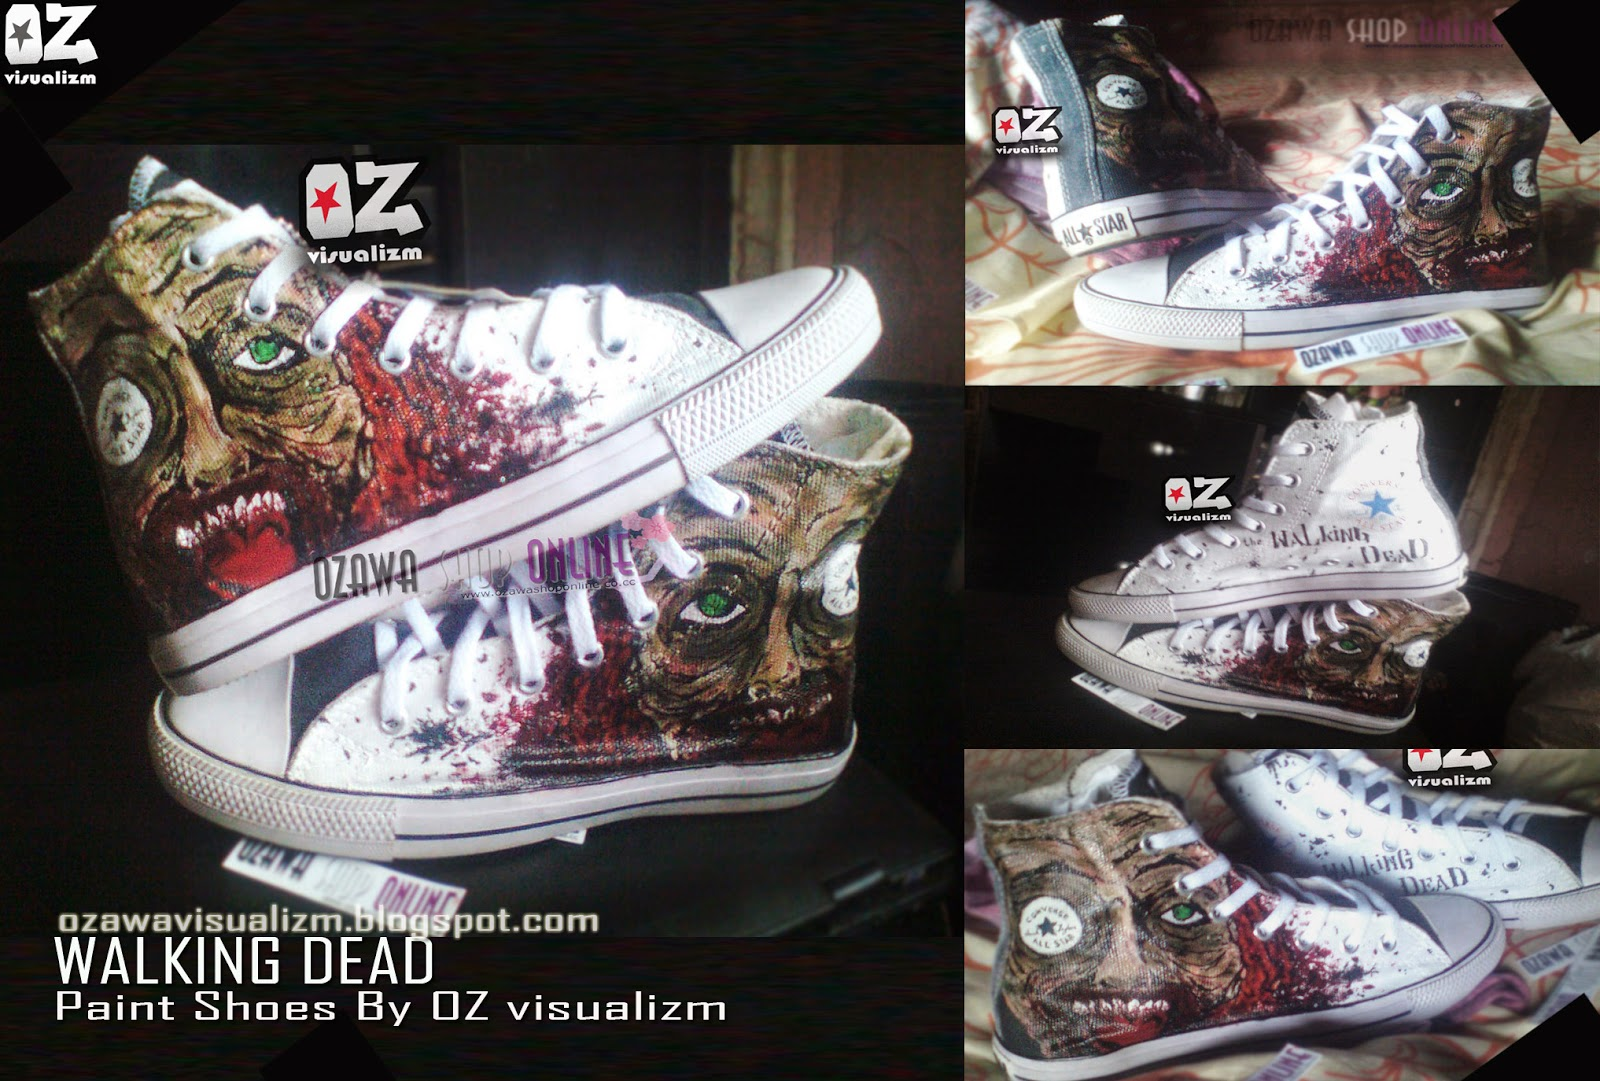 Ozawa Visualizm online shopz  SEPATU LUKIS WALKING DEAD CONVERSE ALL STAR 81cb0b9a95